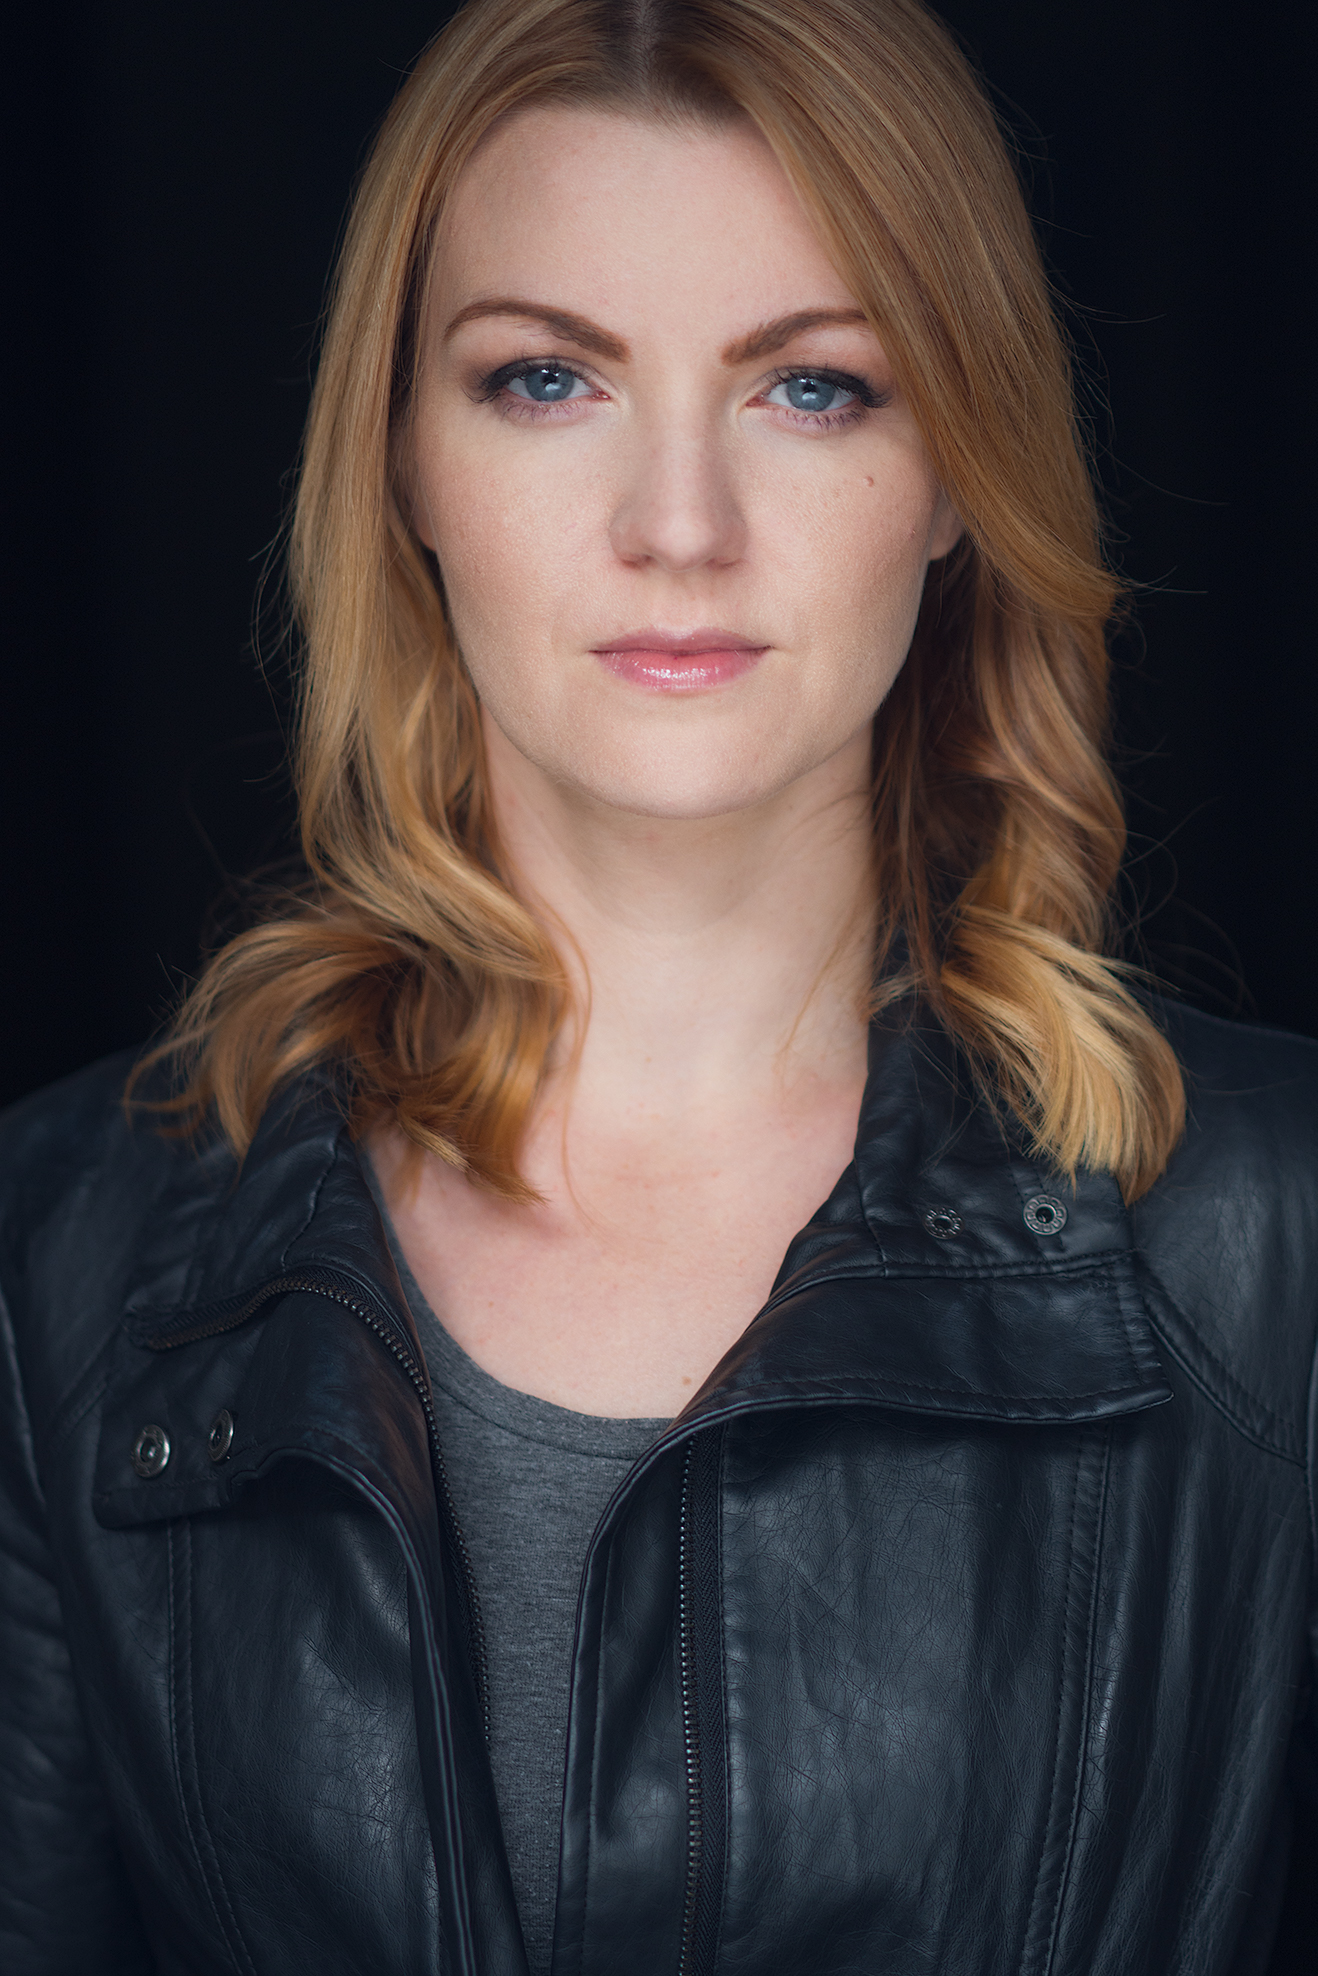 Eline Mets headshot-photo by Jordan Connor.jpg